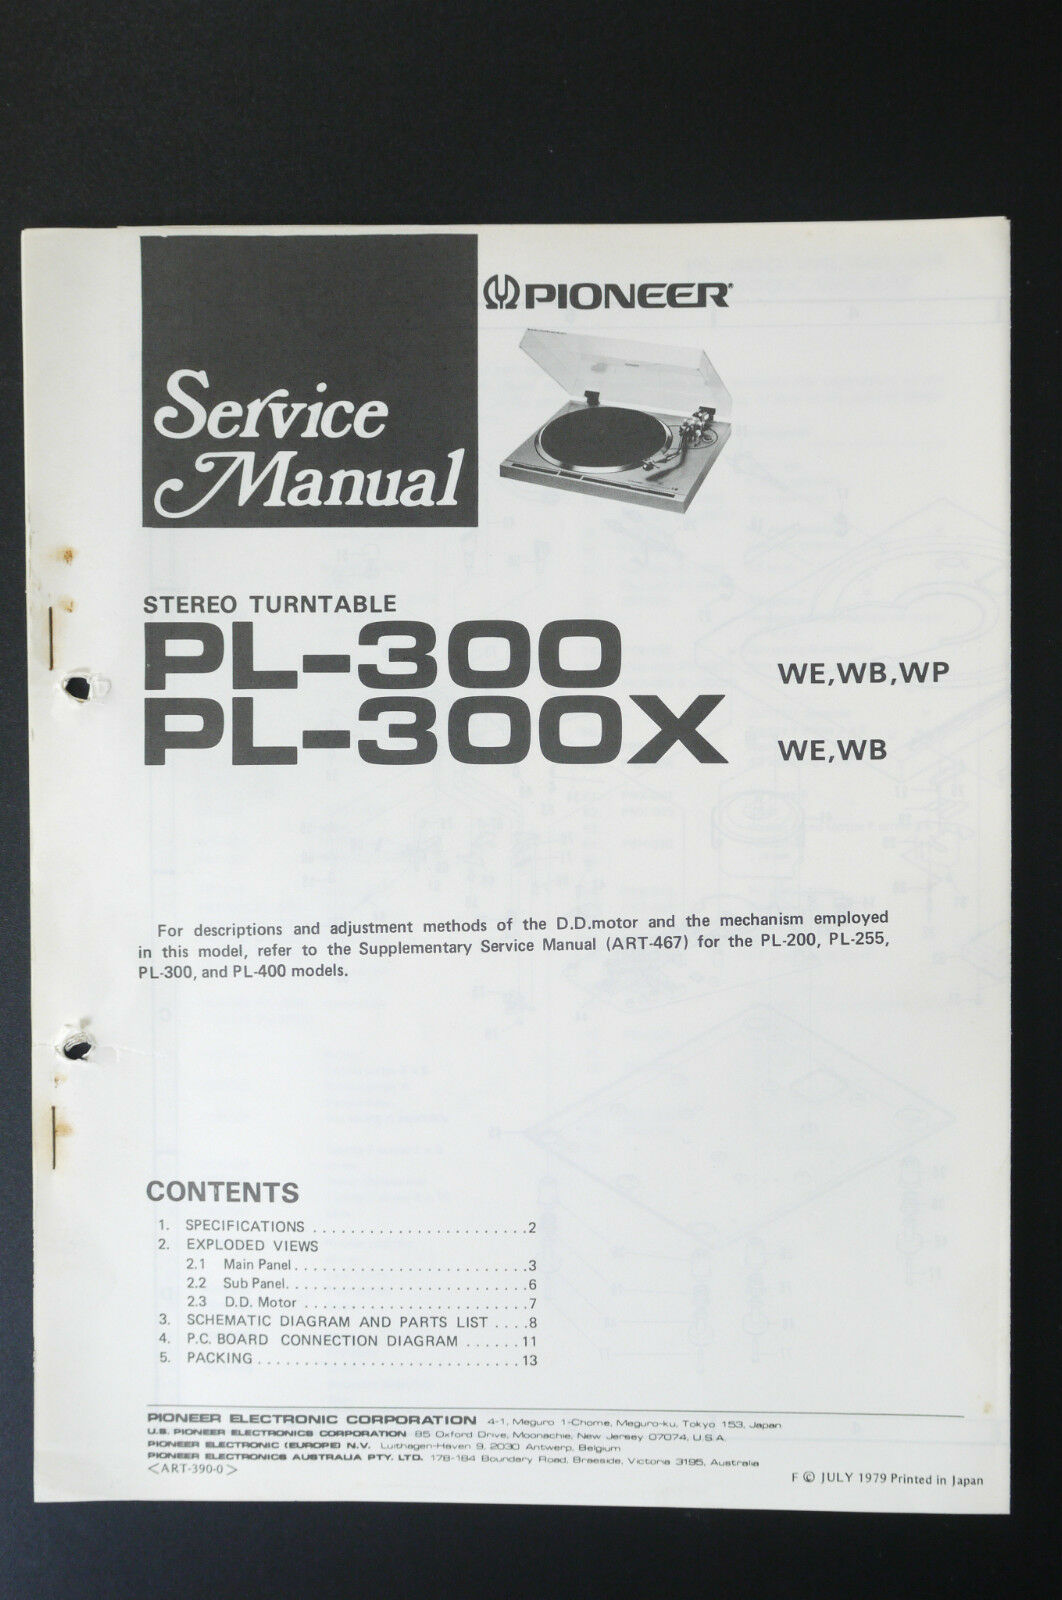 Manuals Resources Prices On Daasy Page 18 Pioneer Electronics Wiring Diagram Pl 300 300x Original Service Manual Guide O25